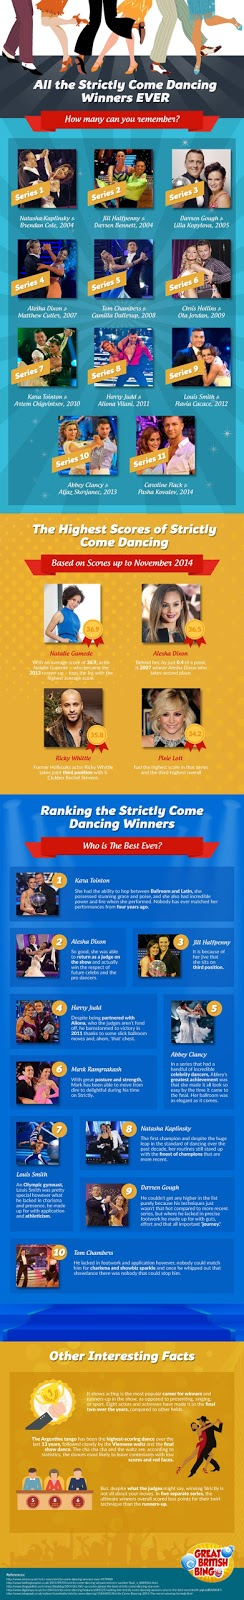 strictly come dancing, infographic, facts, #strictly